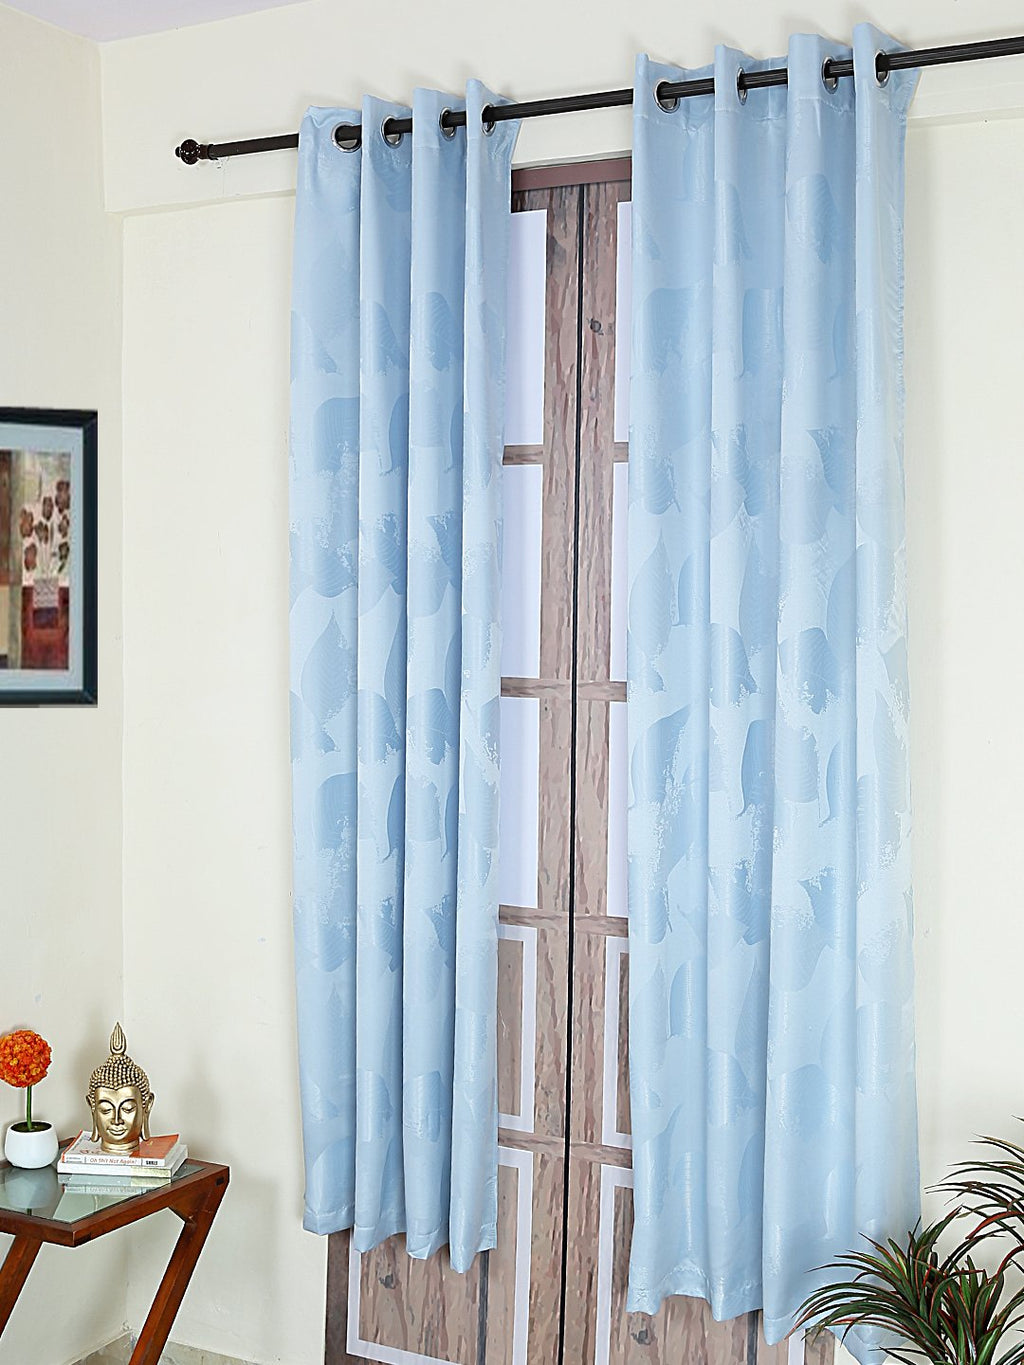 RANGRAGE 1 Piece Eyelet Polyester Door Curtain, 7ft, Soothing Blue